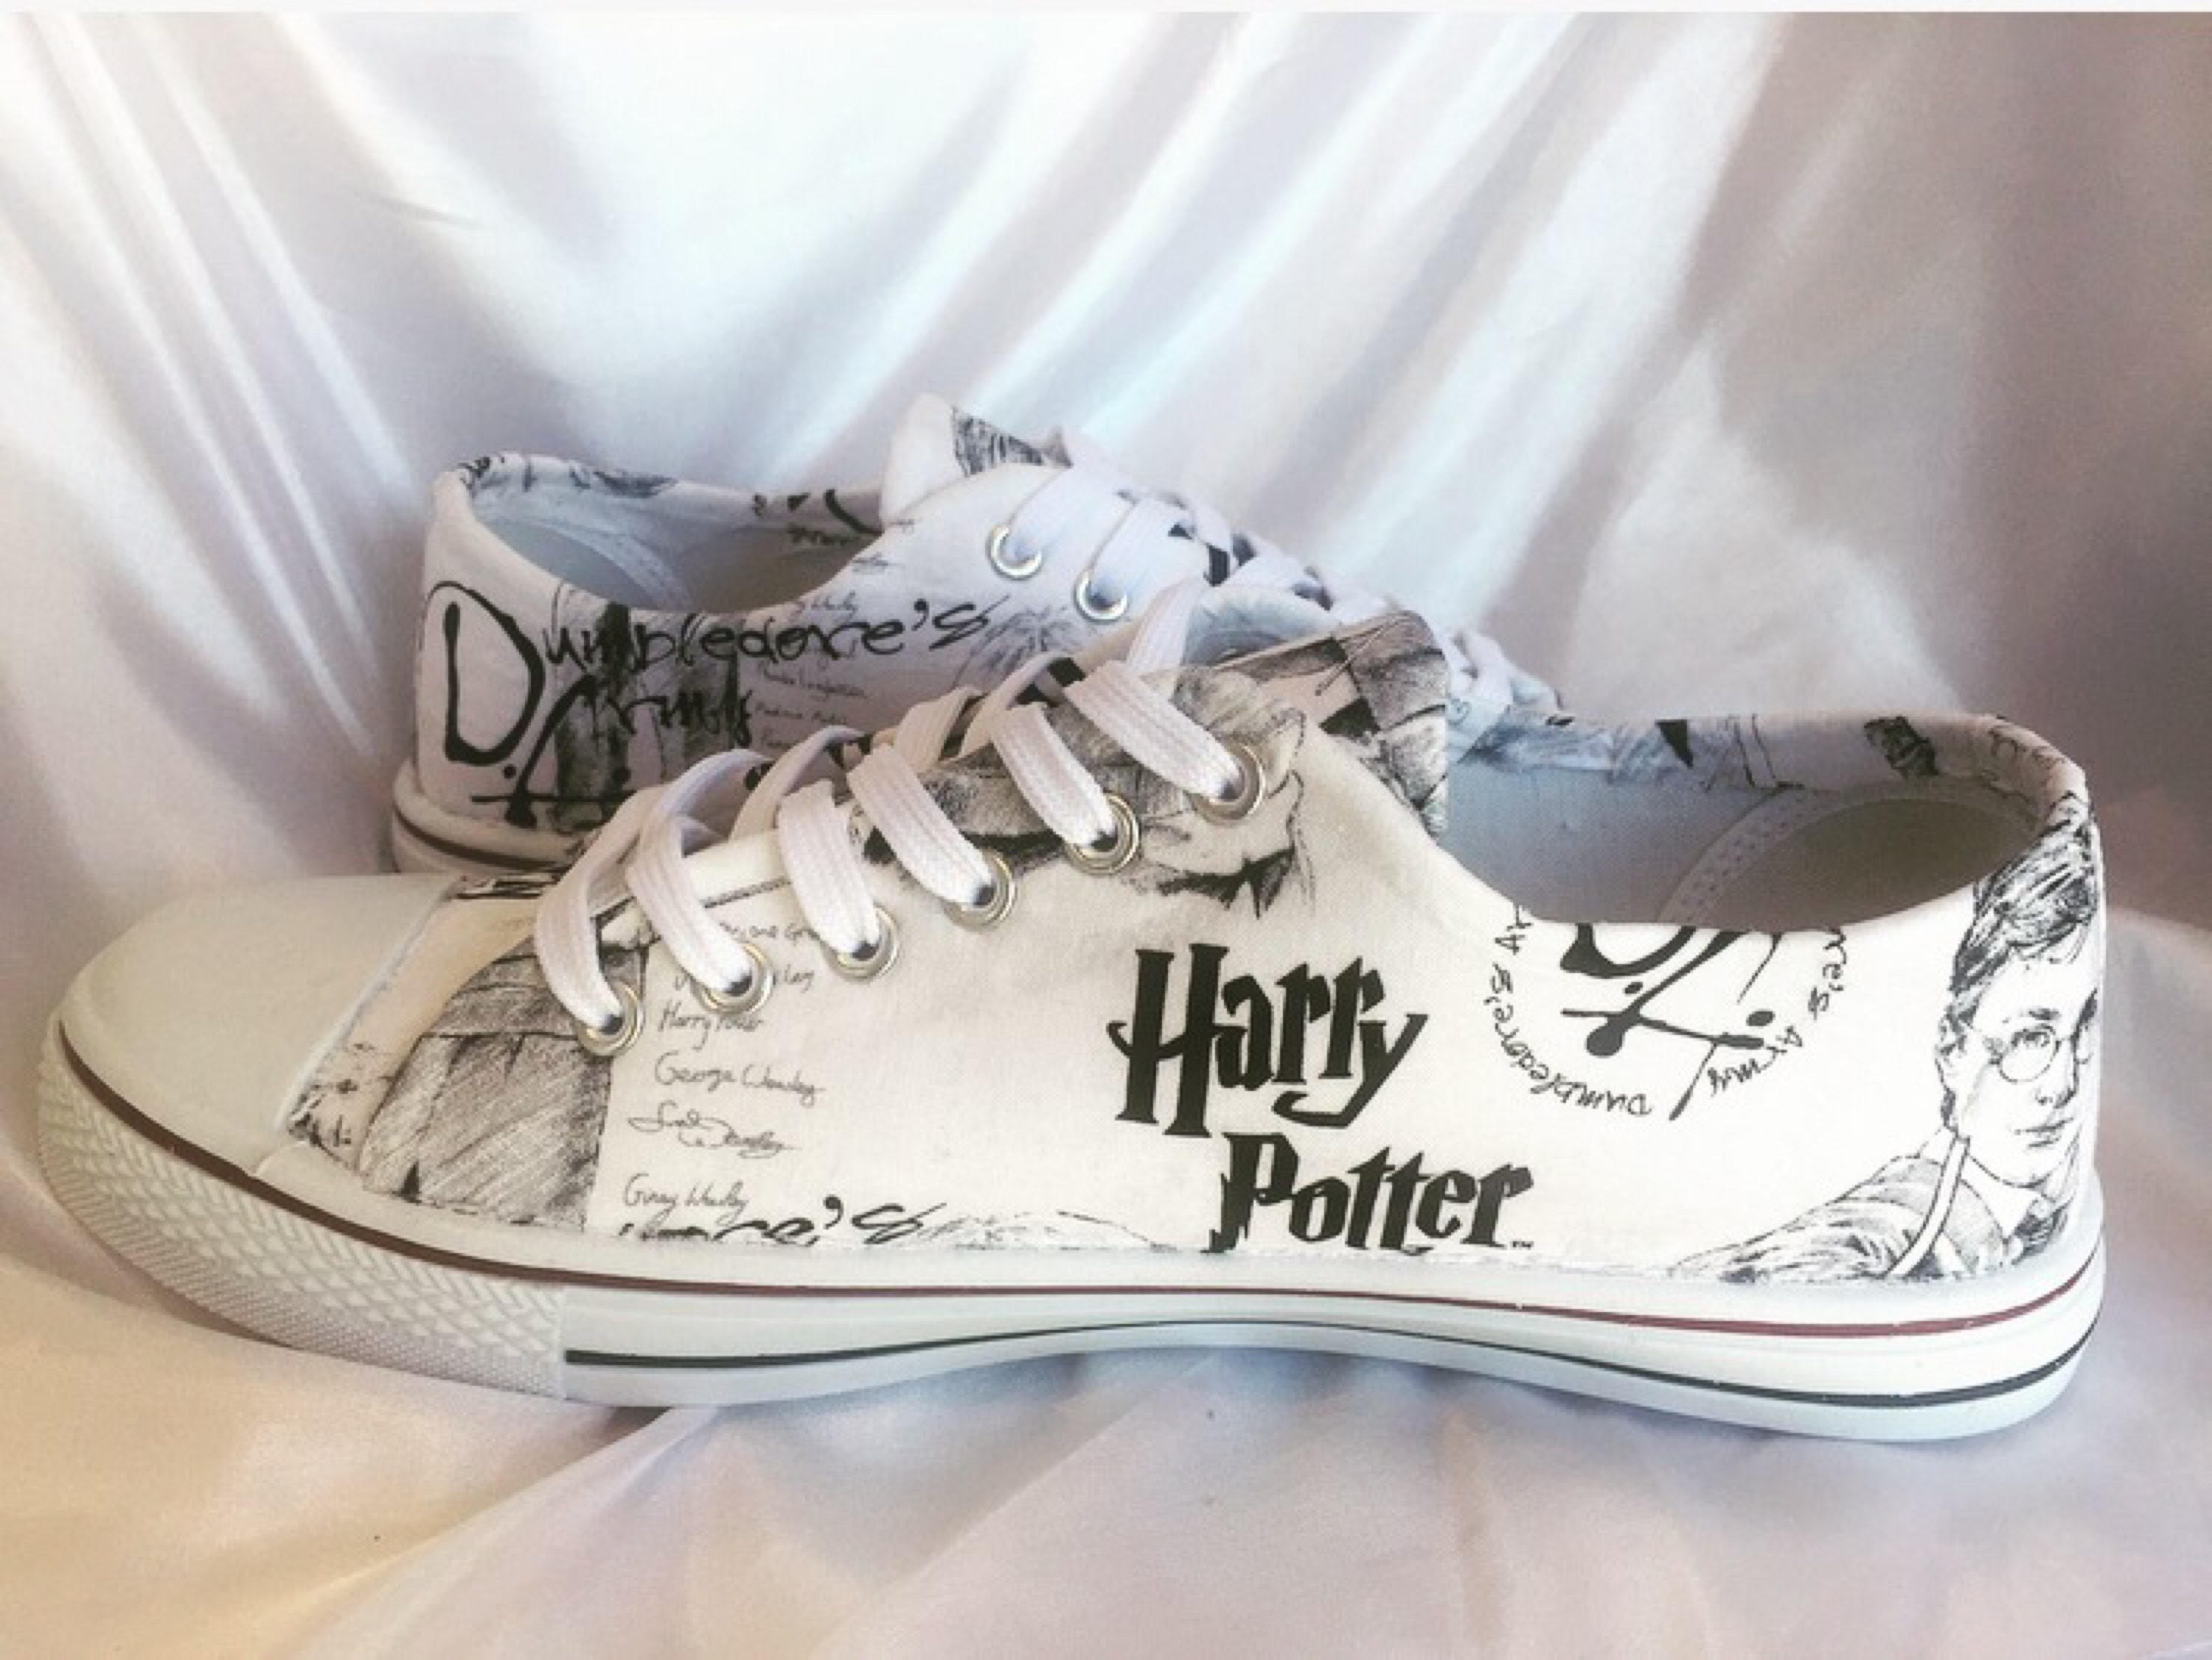 Potter For Harry Shoes Yourstyles Fxqdzyyxsw Ljctk1f WIYeH2ED9